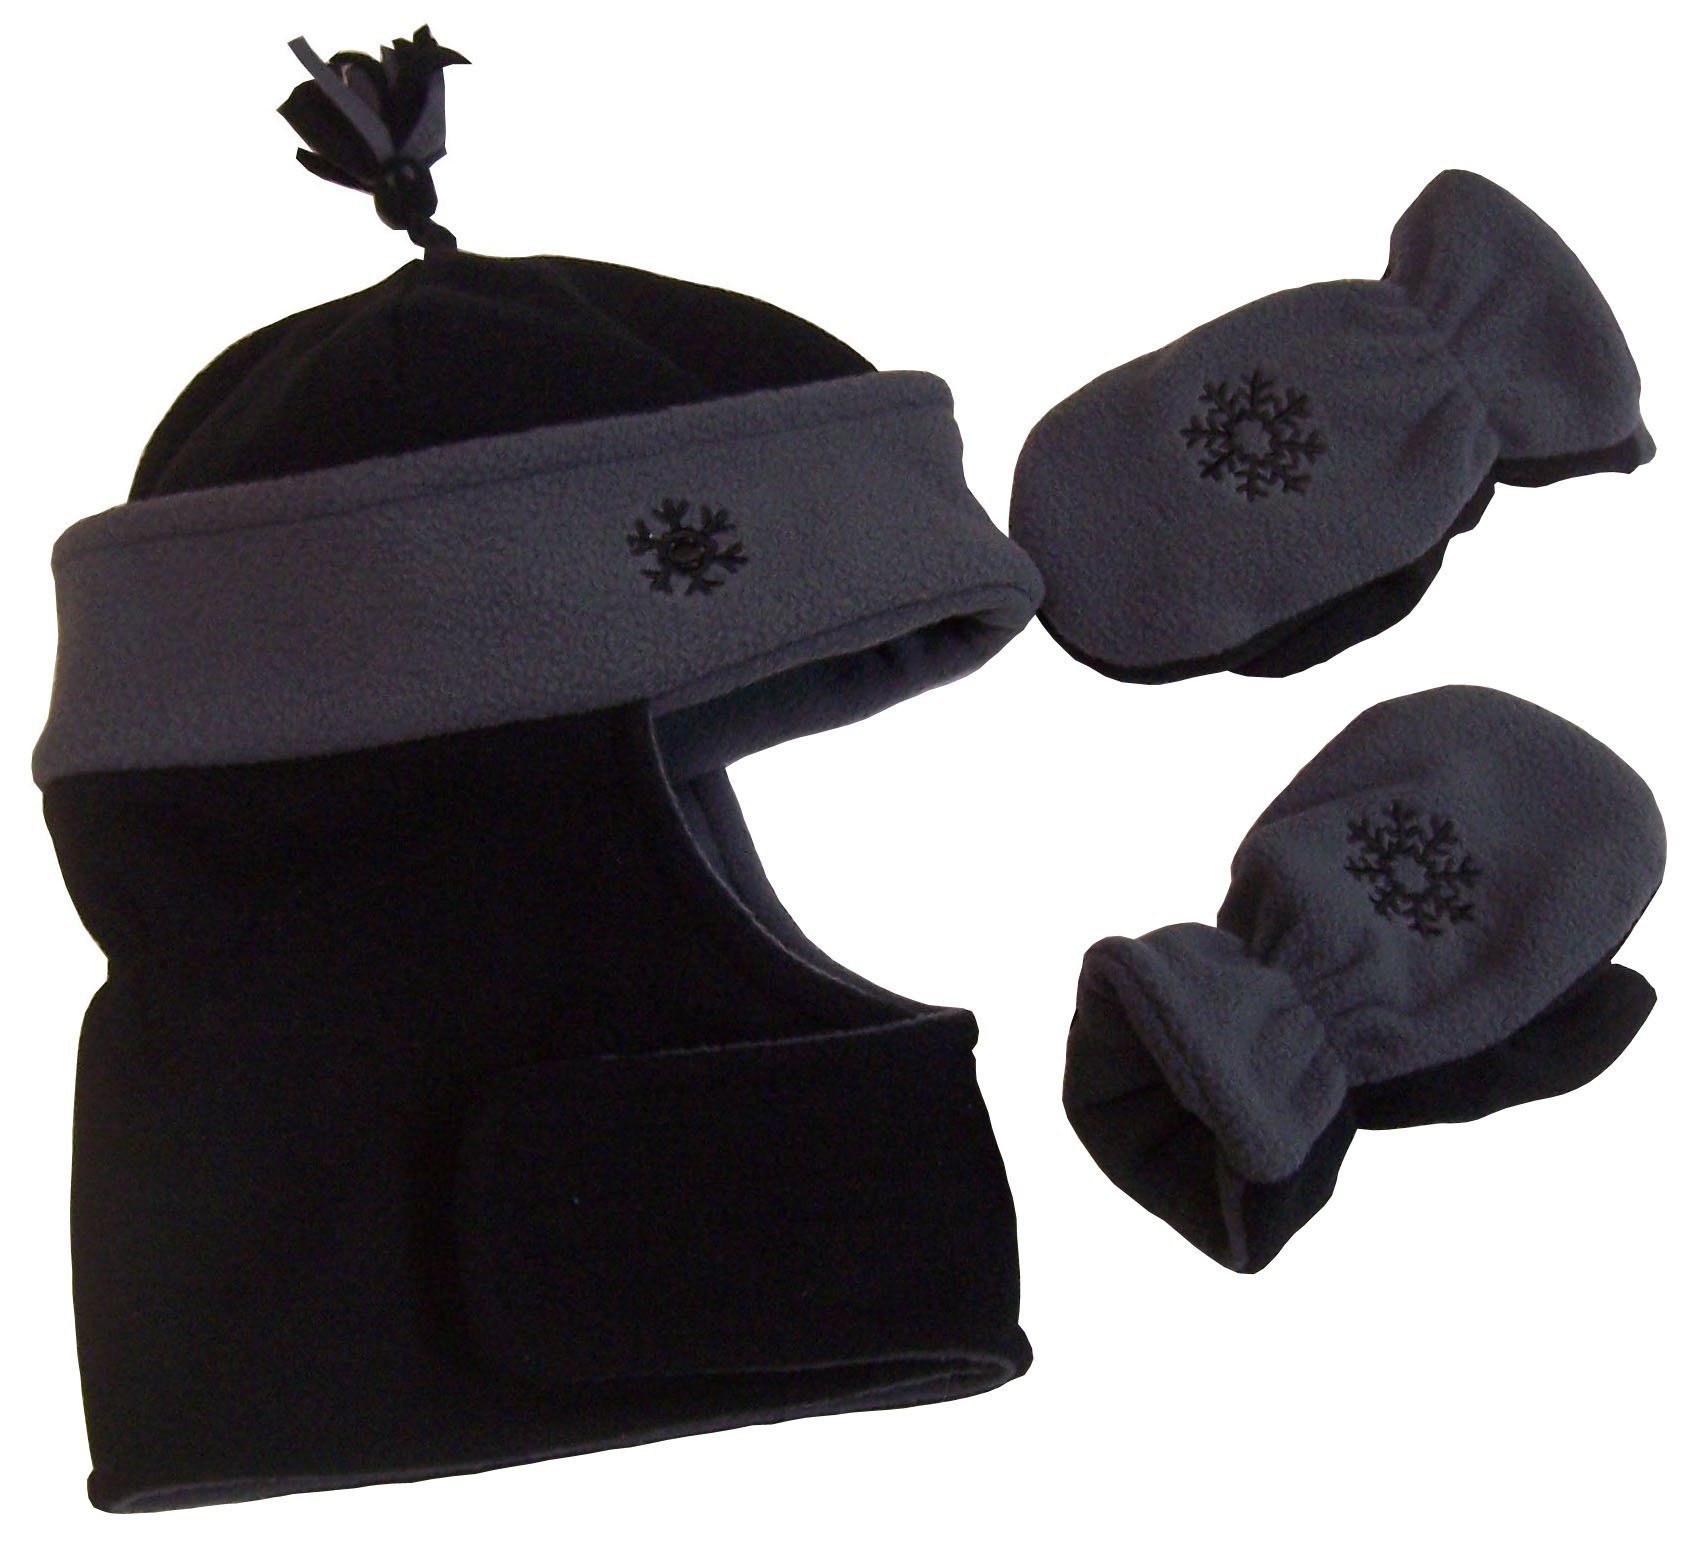 N'Ice Caps Boys Wrap Around Hat and Mitten Set with Embroidery (3-5yrs, black/charcoal grey)